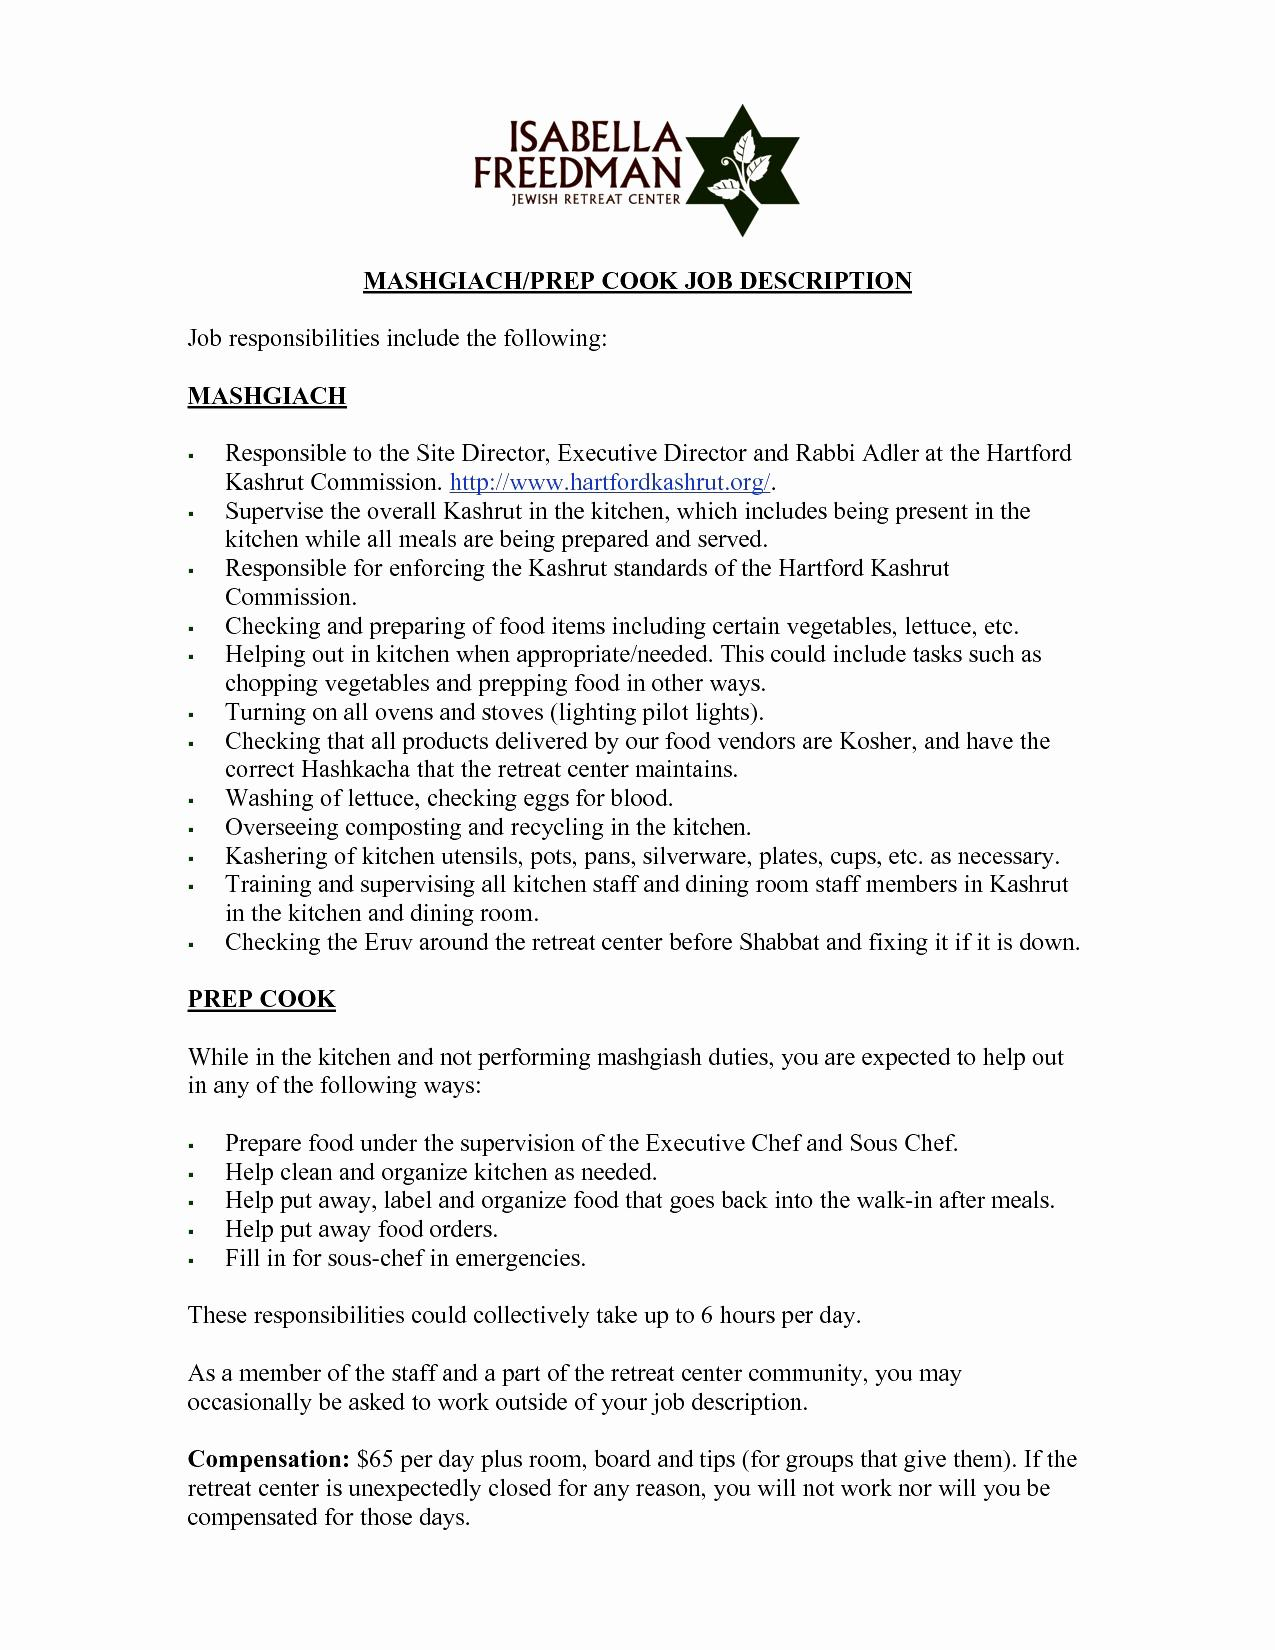 Resume Objective for Fast Food - Fast Food Resume Sample Fresh Fast Food Resume Objective Pdf format